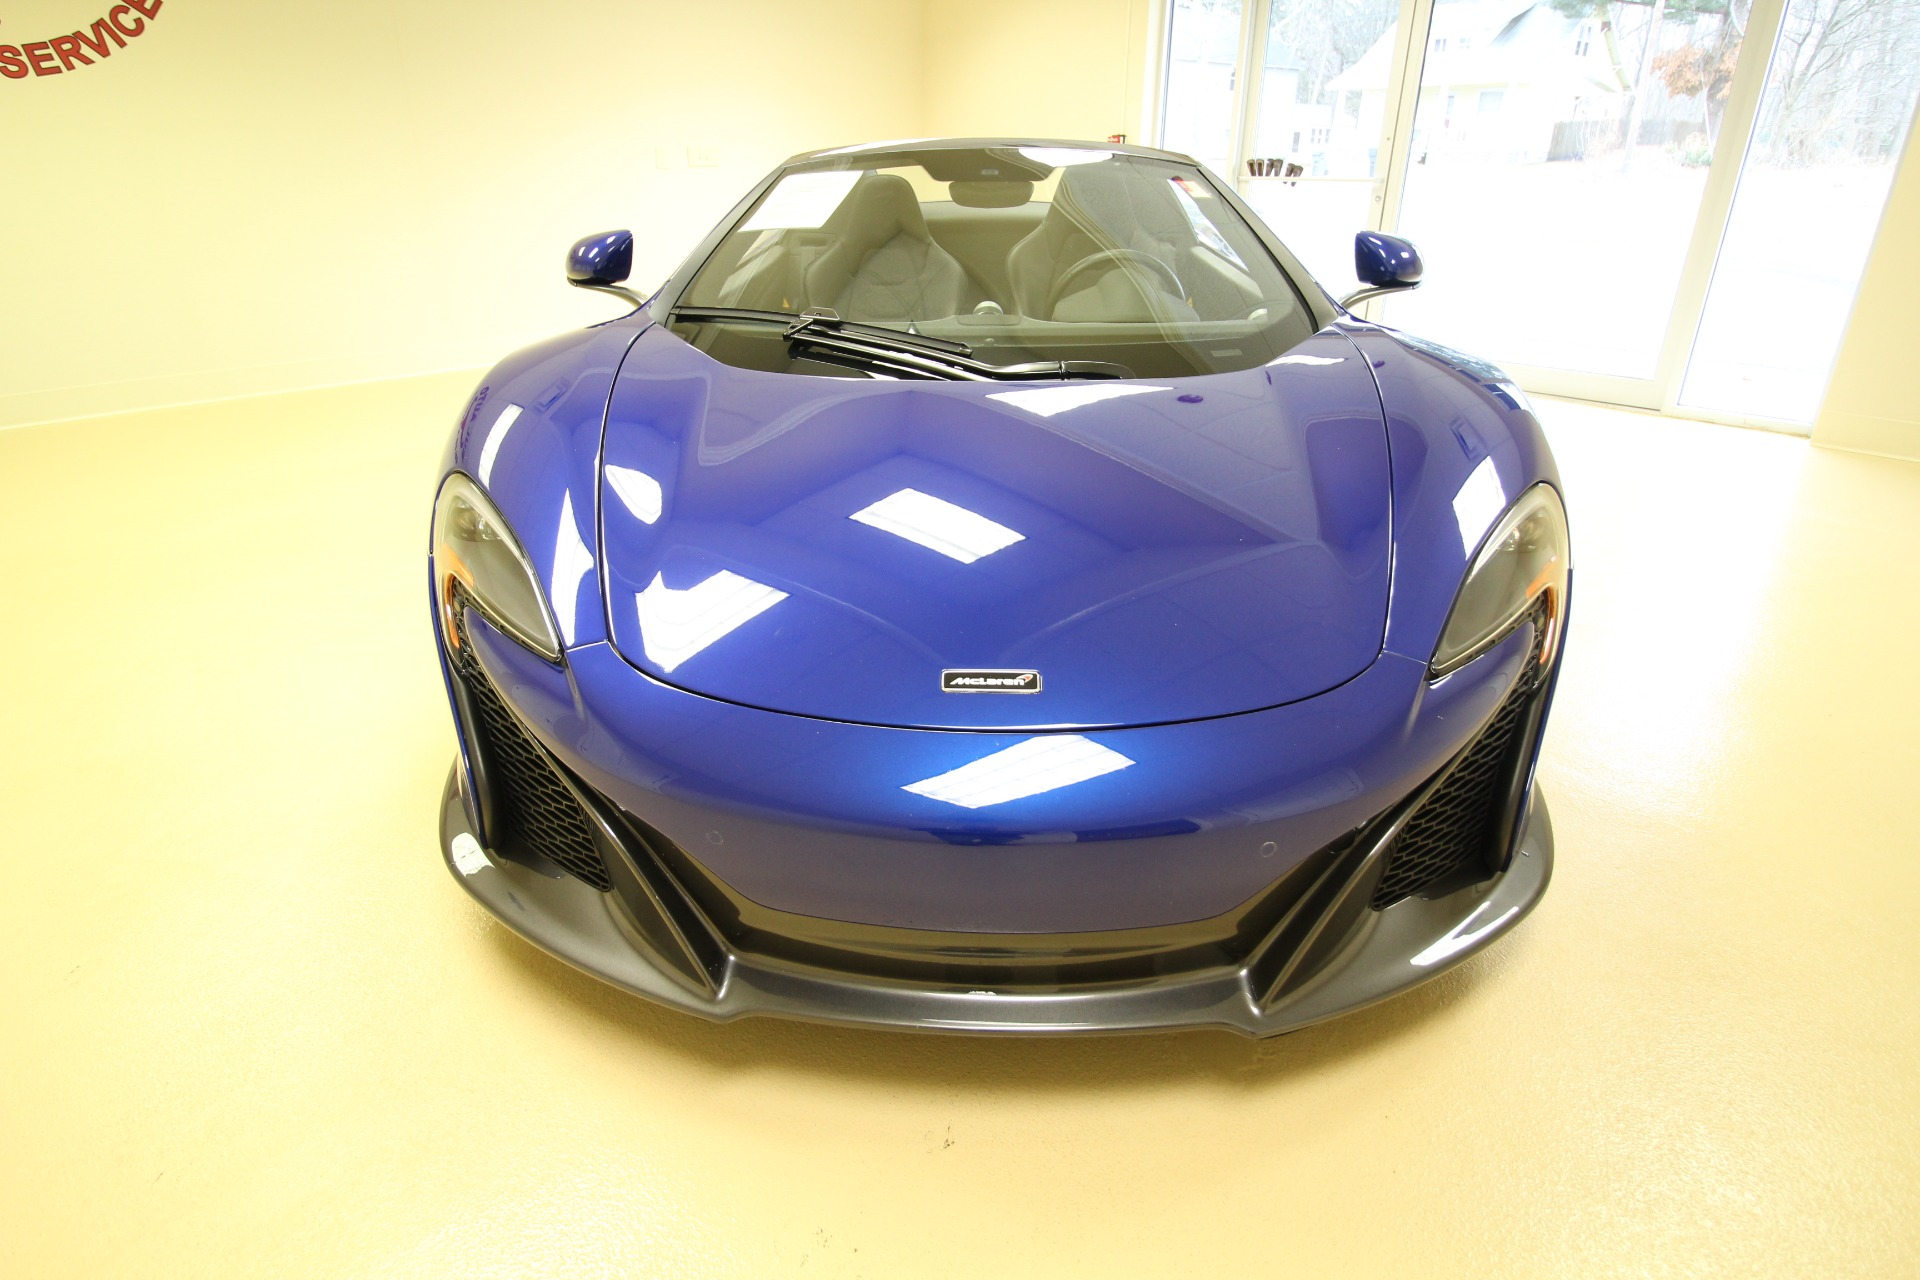 Used 2015 McLaren 650s Spider S RARE COLOR ALL STOCK UNMOLESTED NEW TIRES CARBON FIBER INTERIOR | Albany, NY